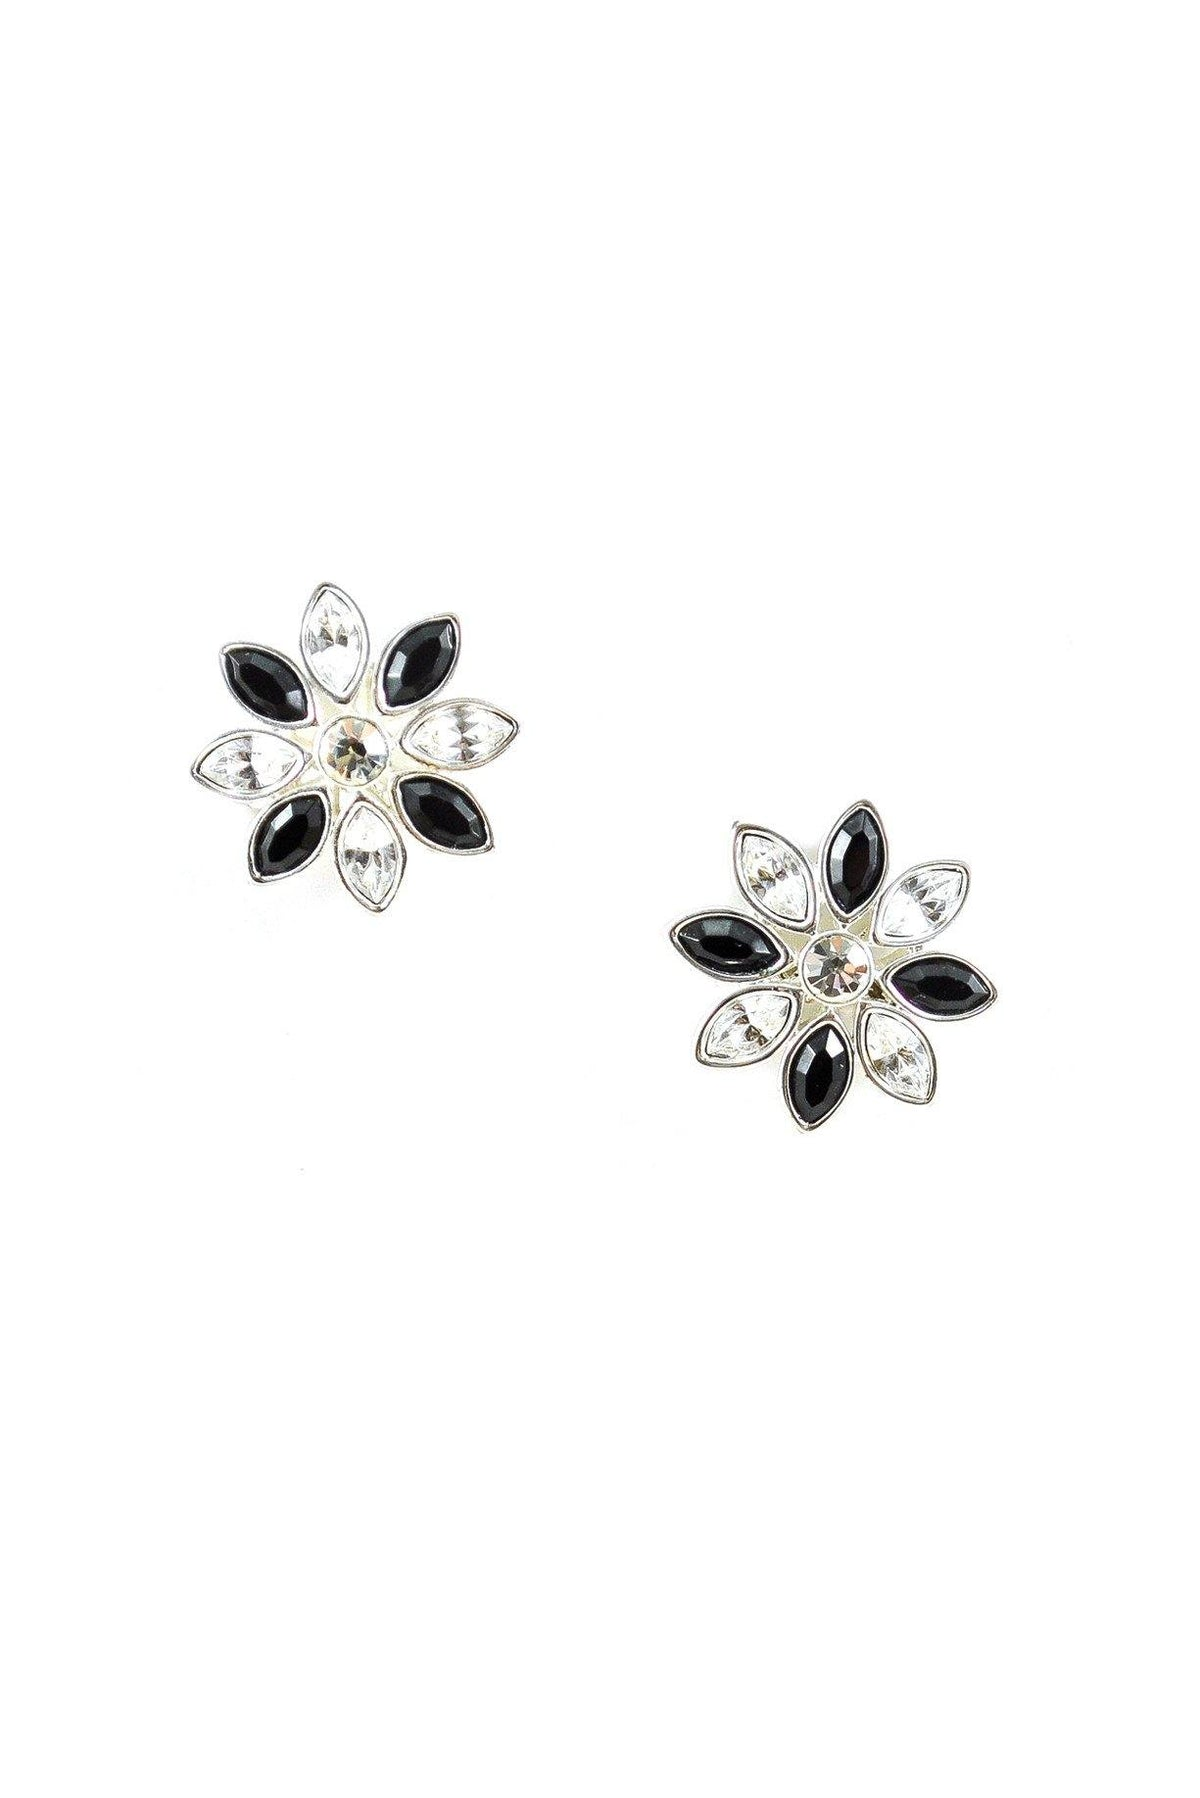 80's Napier Floral Rhinestone Clip-ON Earrings